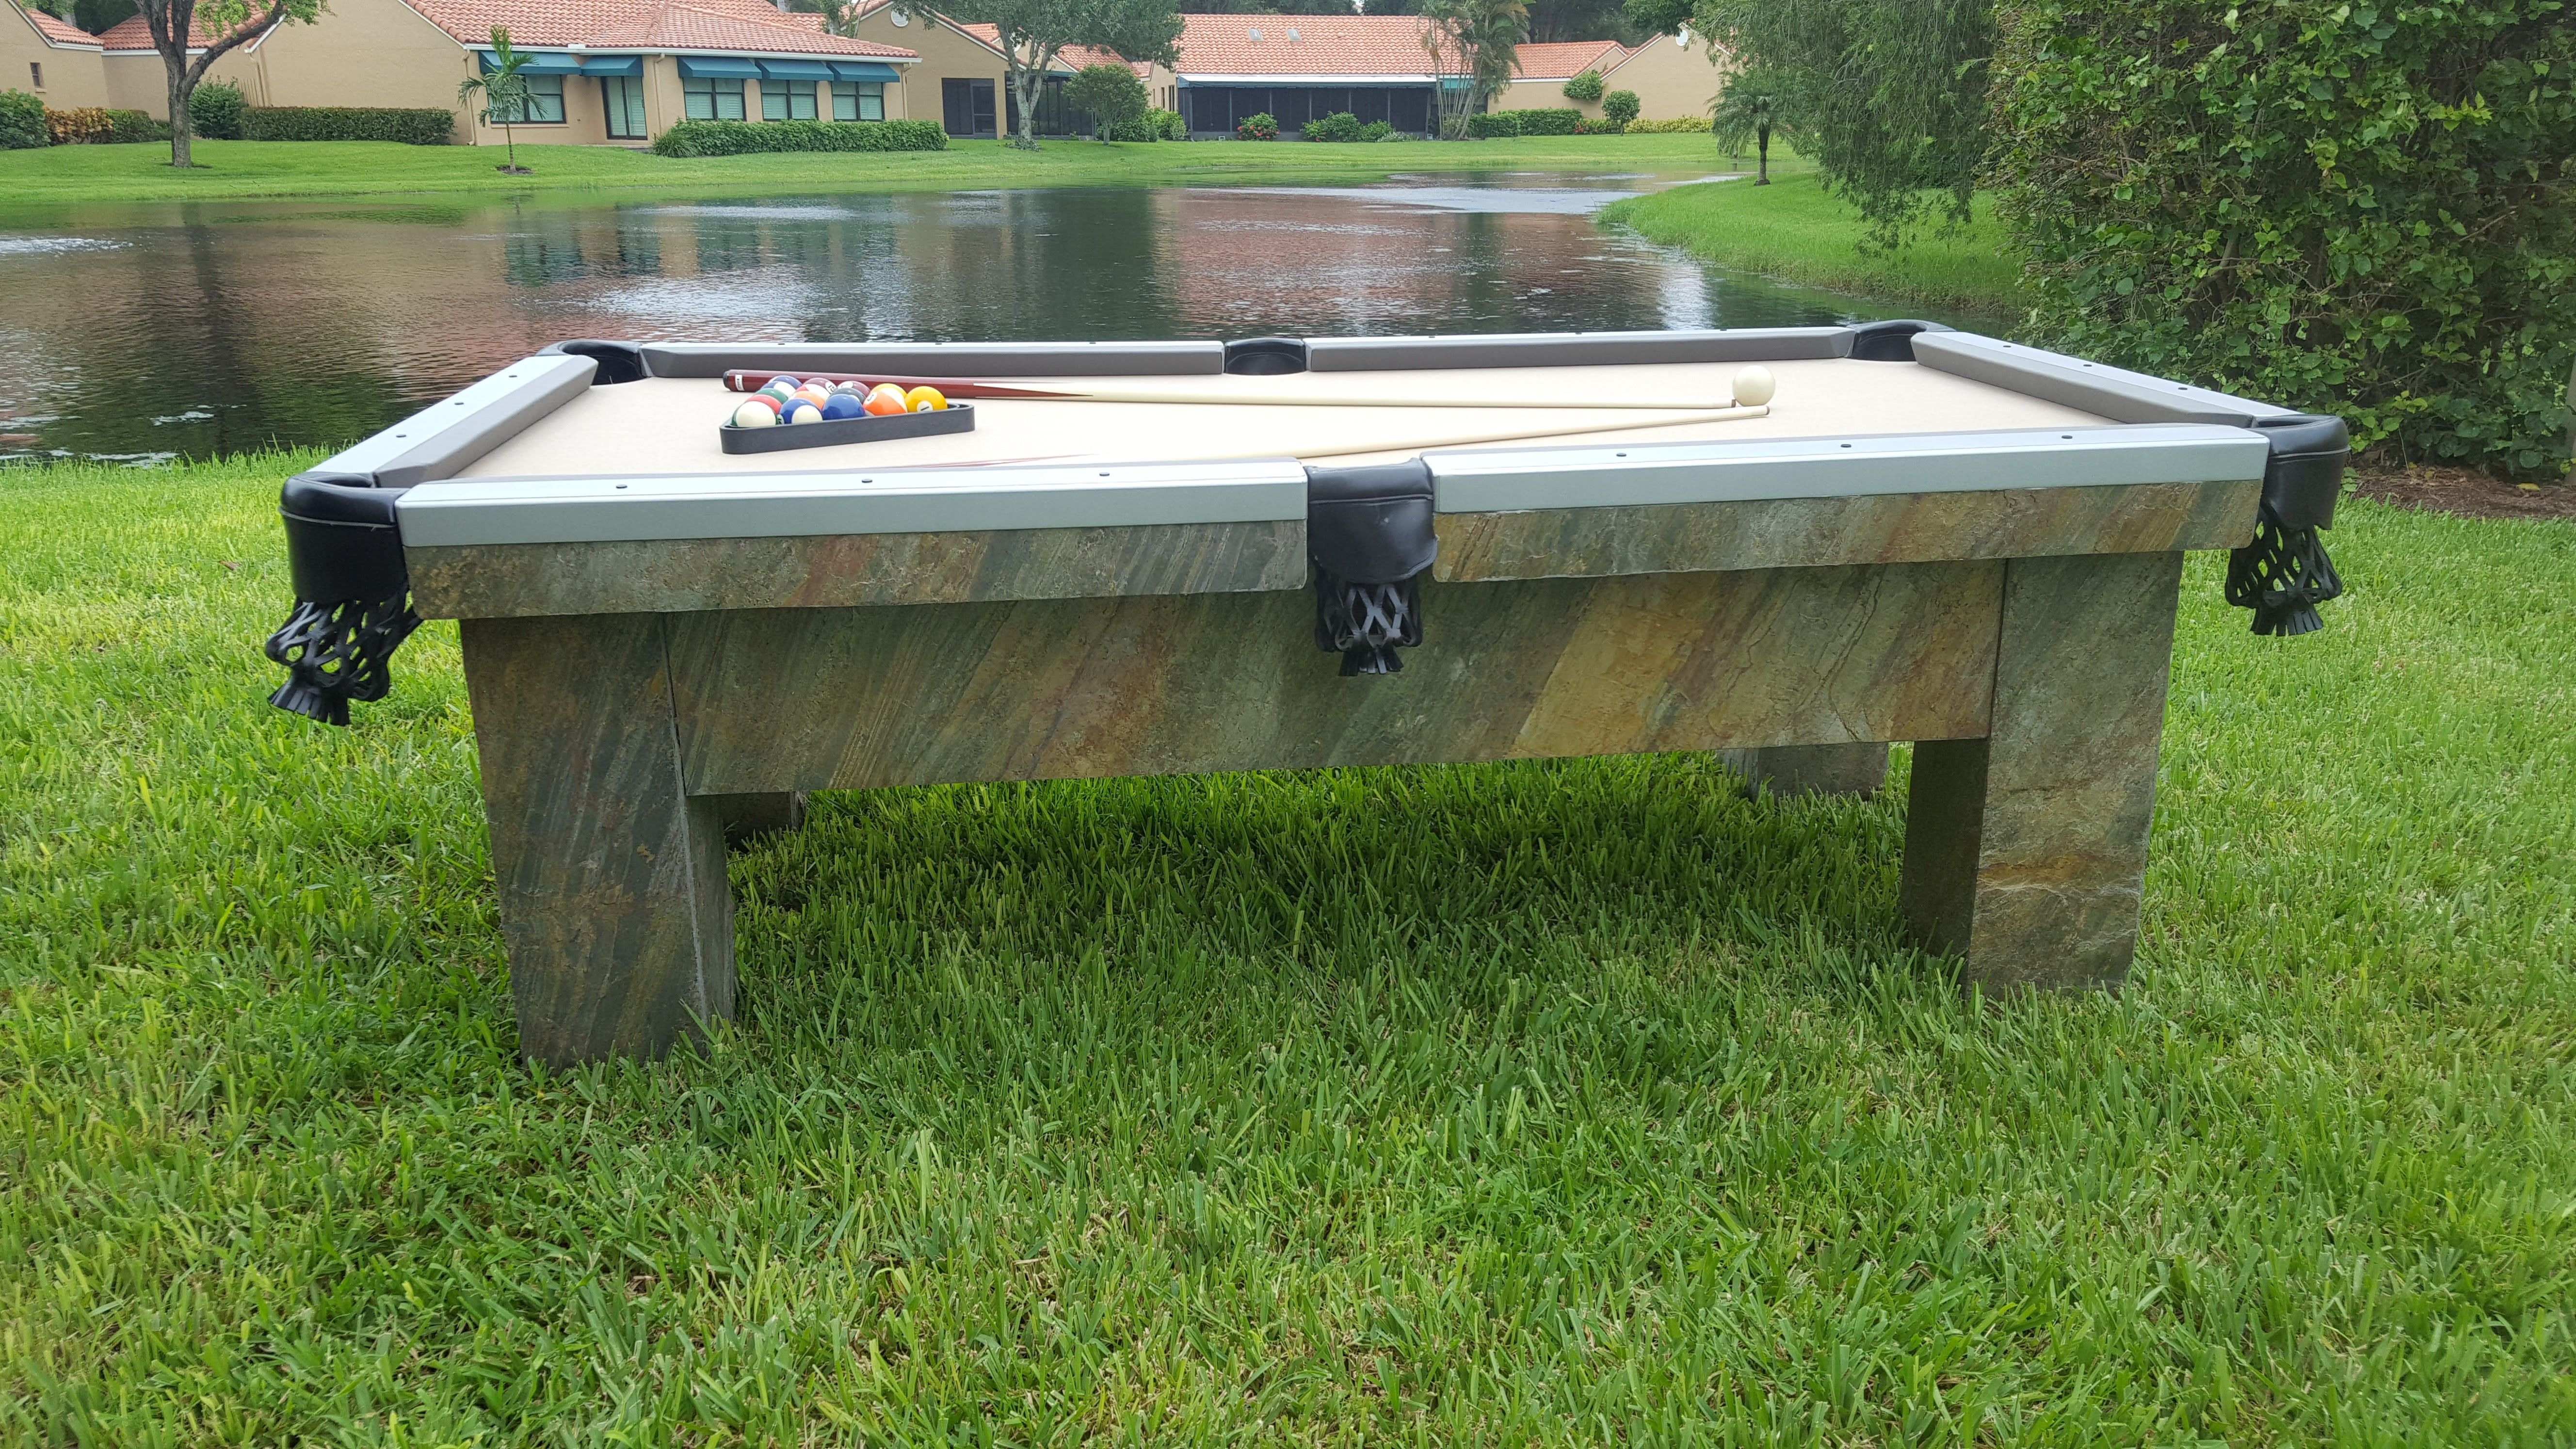 All Weather Billiards And Exceptional Waterproof Outdoor Pool Tables Made In The U